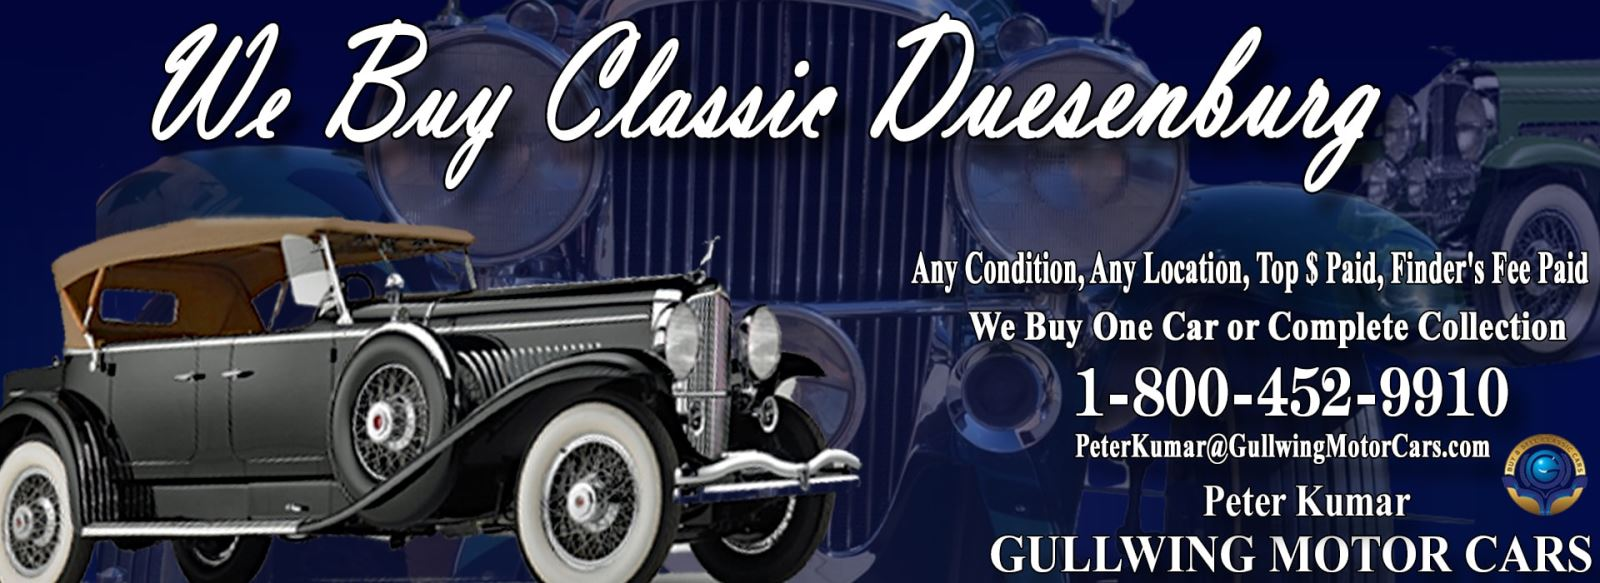 Classic Duesenburg for sale, we buy vintage Duesenburg. Call Peter Kumar. Gullwing Motor